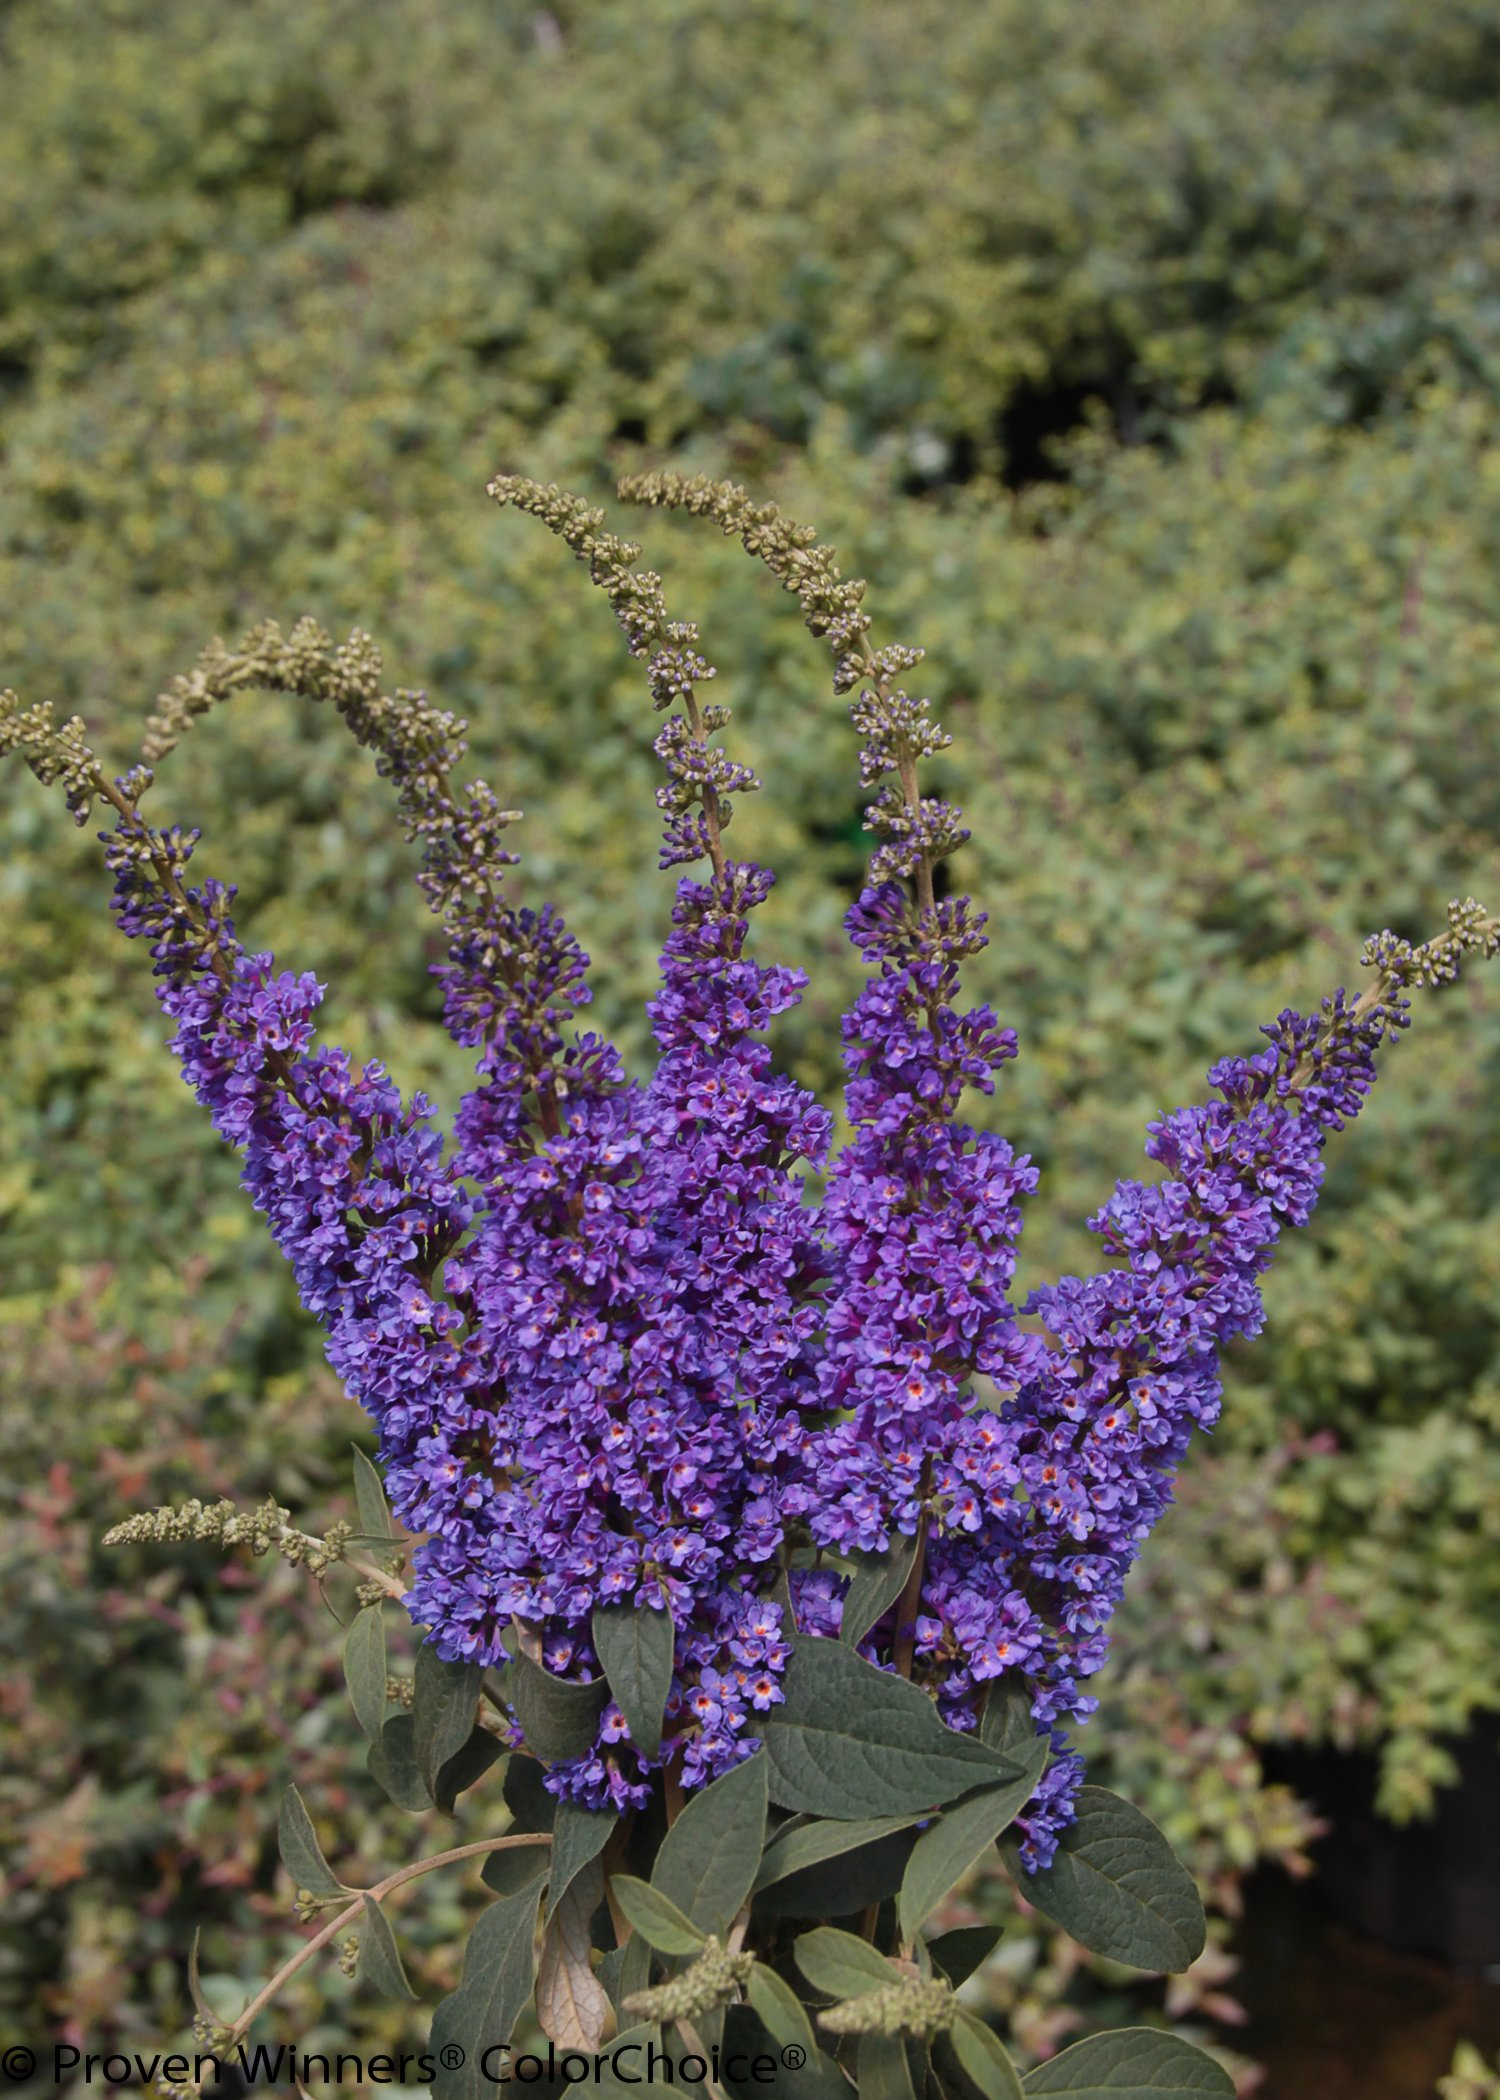 1 Gal. Lo & Behold 'Blue Chip Jr.' Butterfly Bush (Buddleia) Live Shrub, Blue-Purple Flowers by Proven Winners (Image #5)